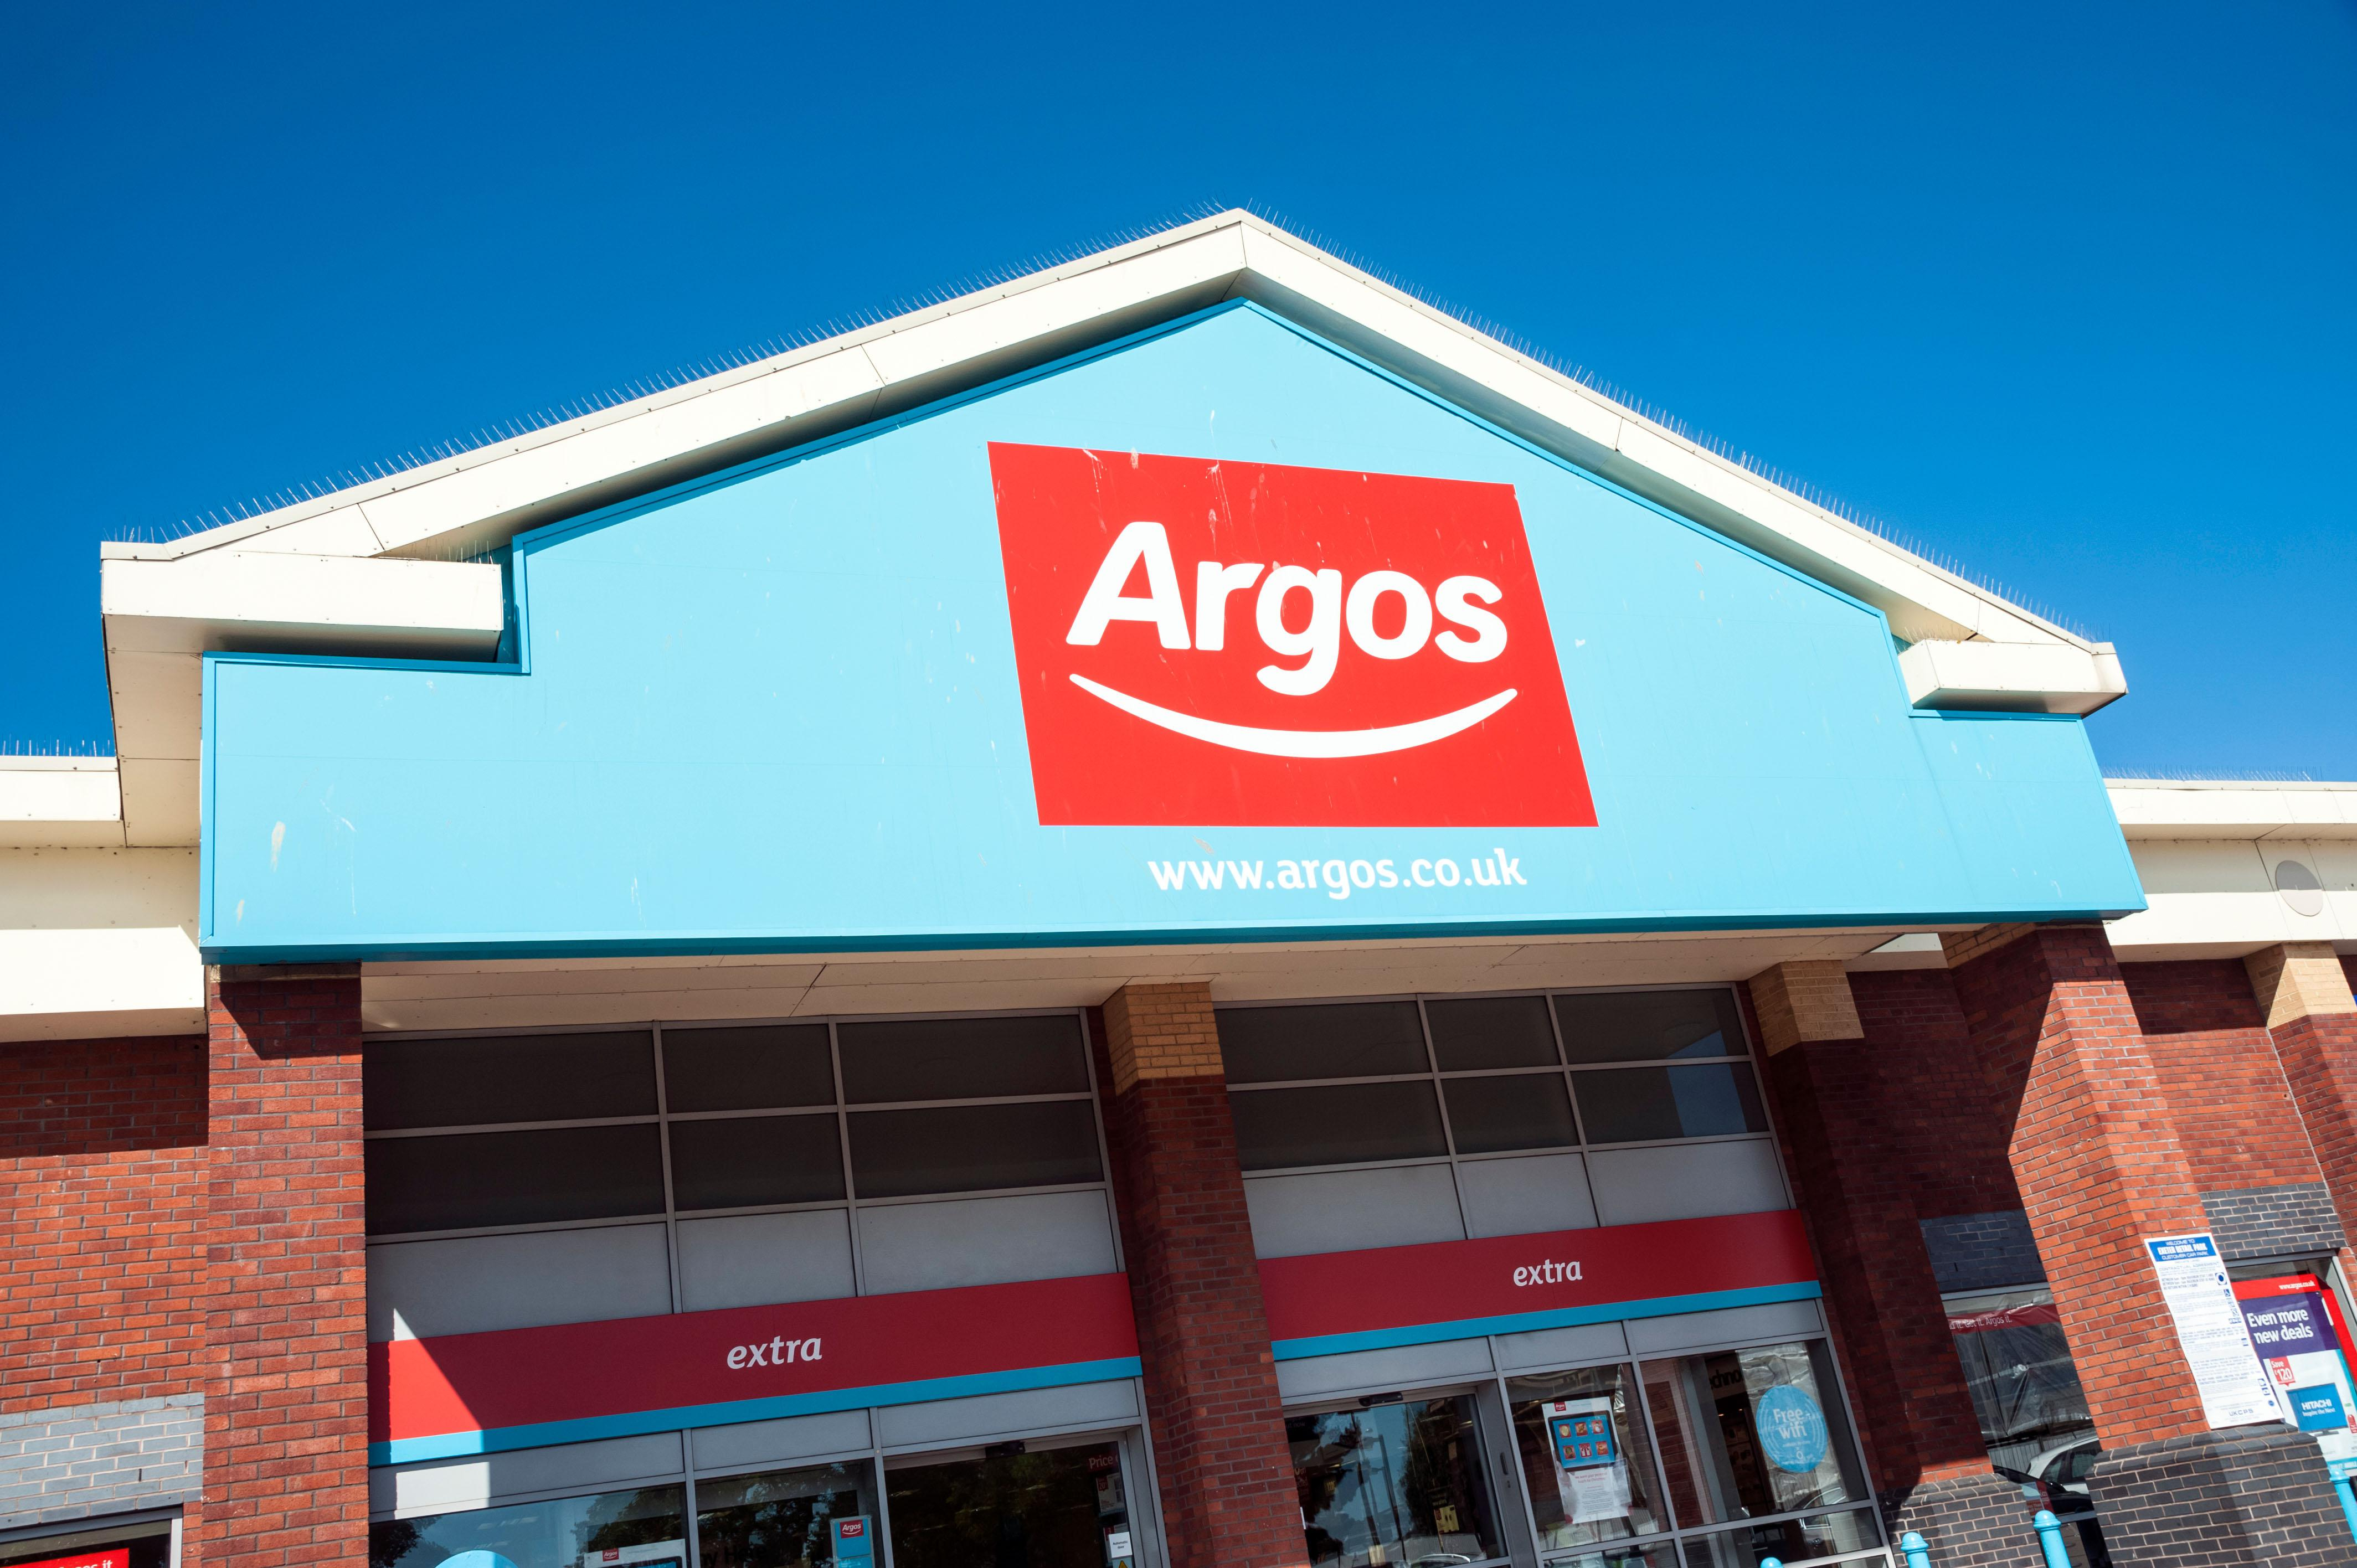 3 Wheel Prams Argos Argos May Bank Holiday 2019 Opening And Closing Hours What